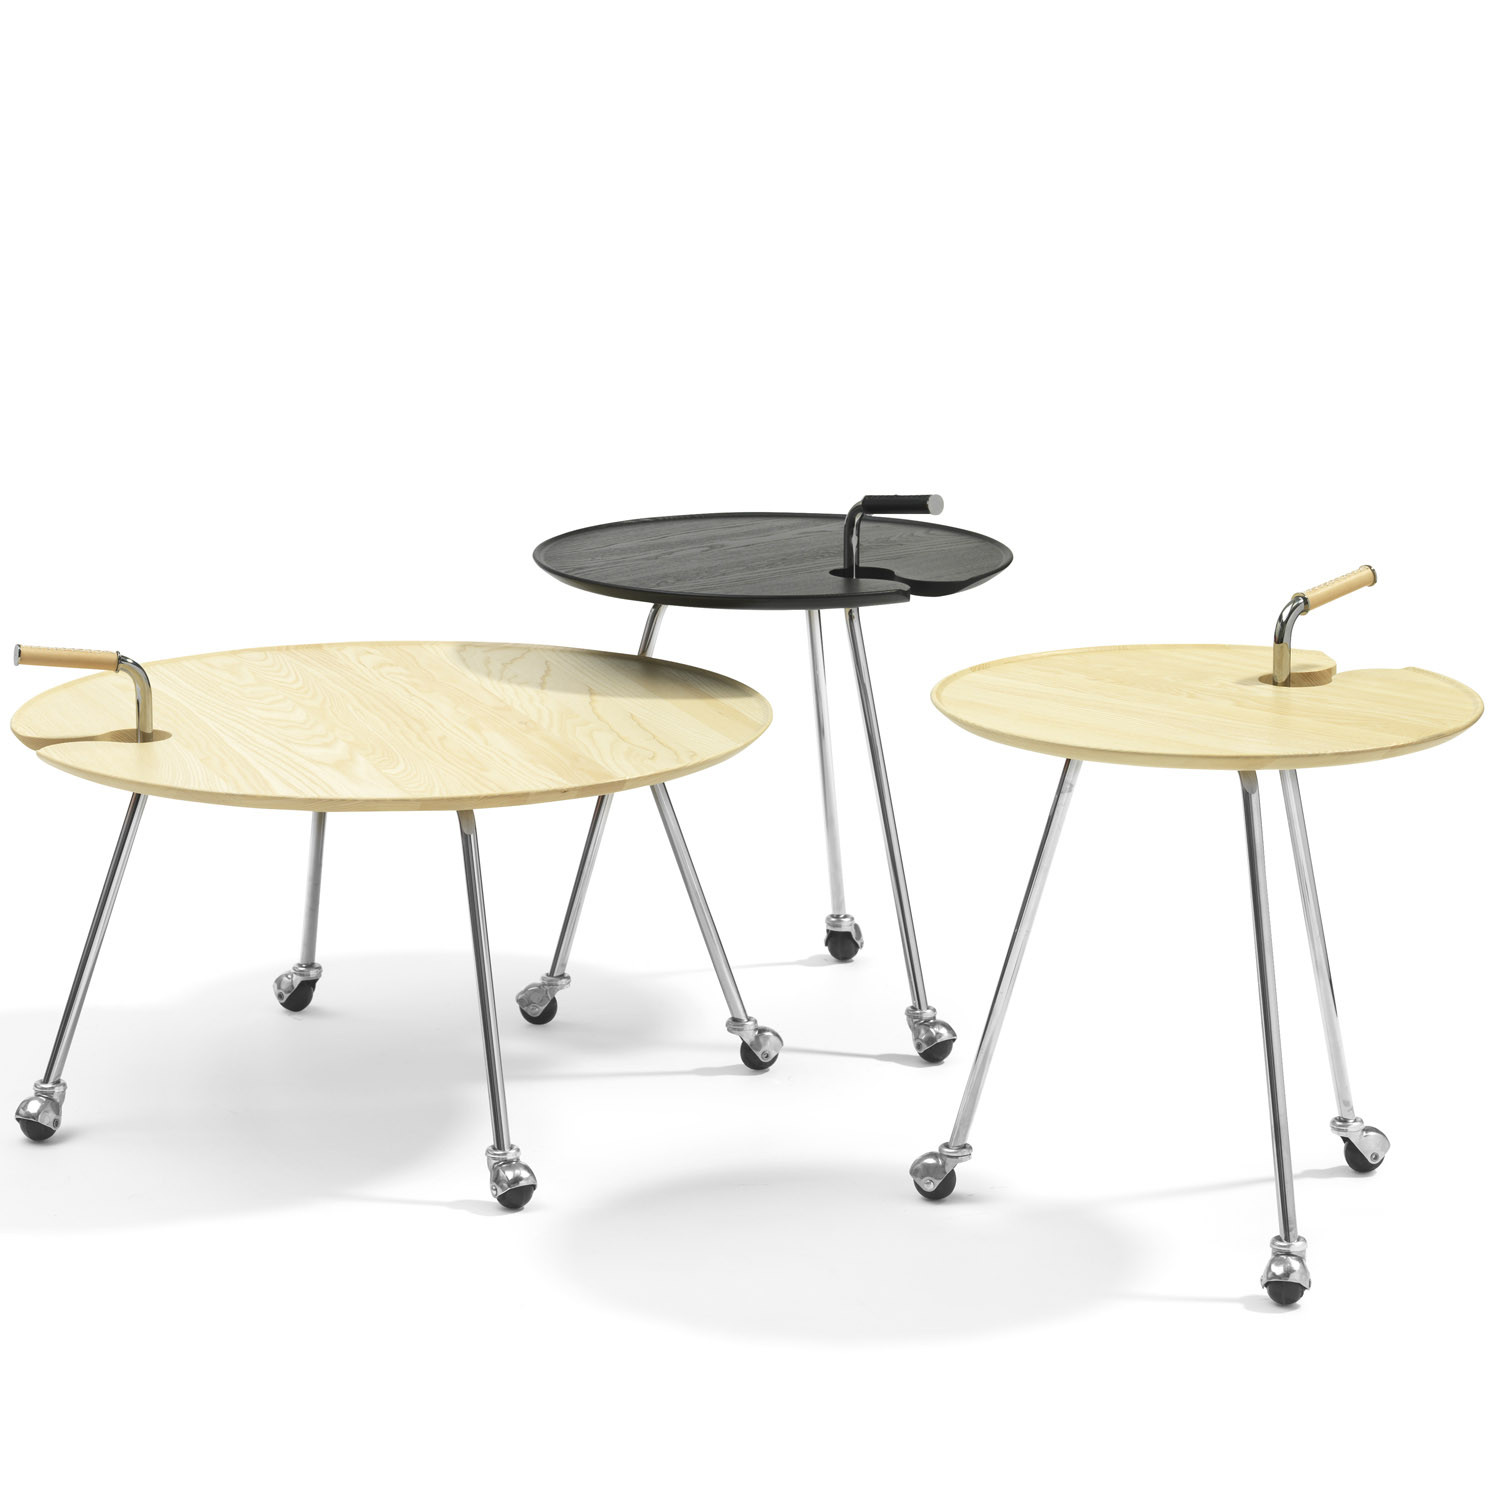 Mia Cullin's Pond Tables L841 and L842